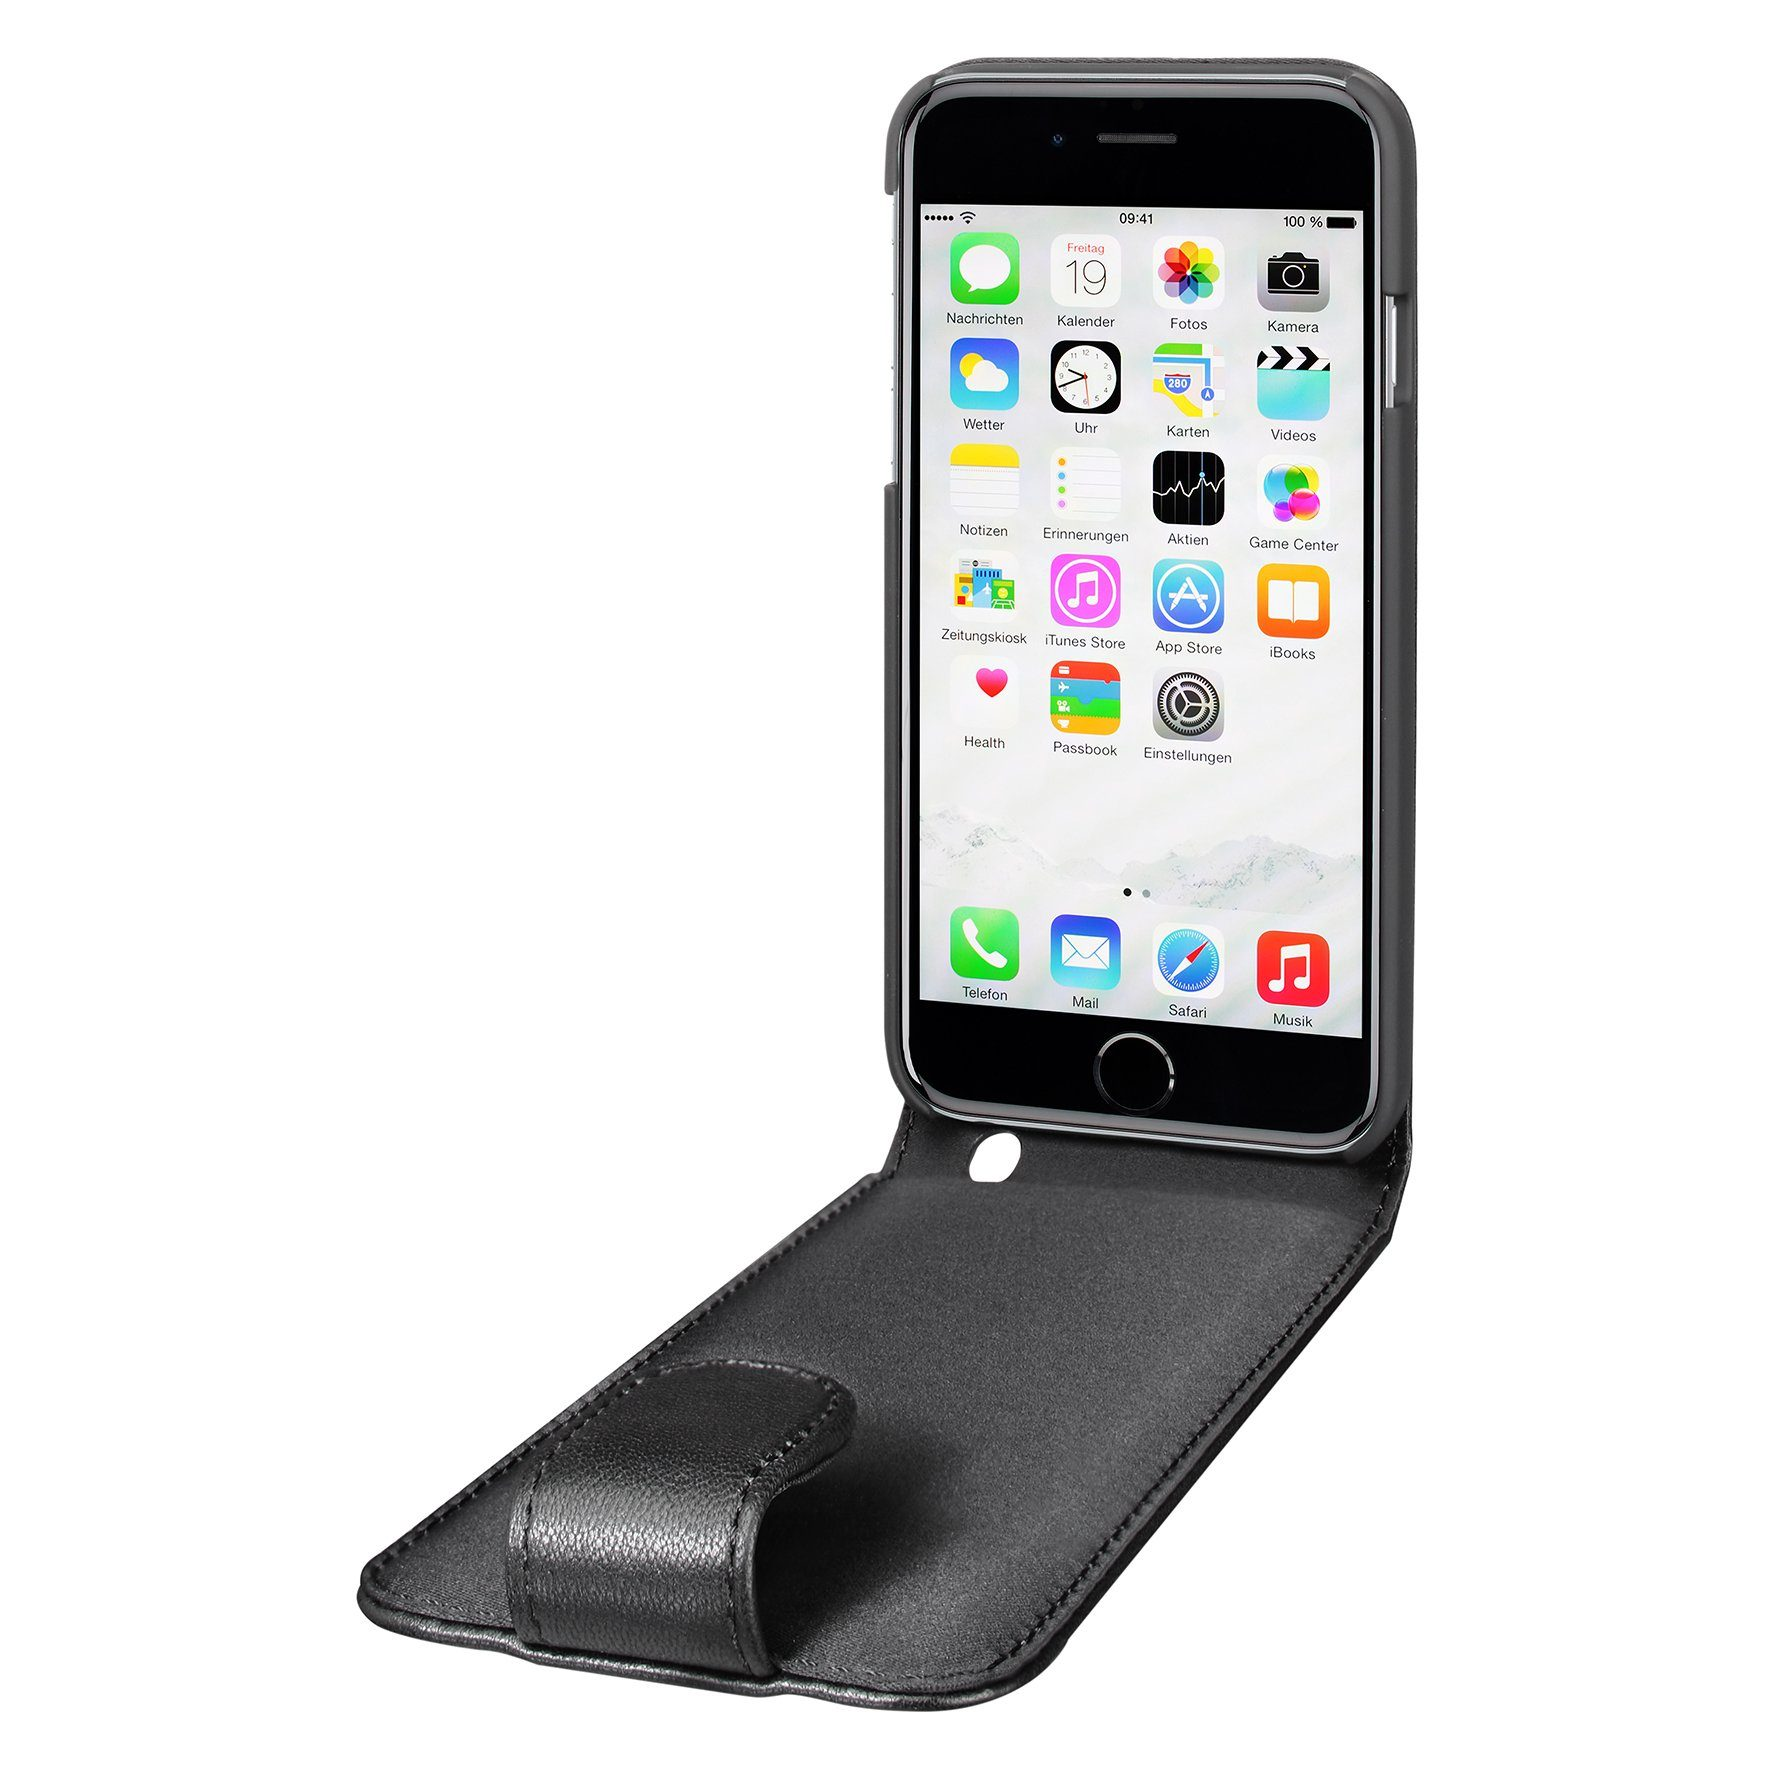 Artwizz Elegante Lederhülle mit sicherem Rundumschutz »SeeJacket Leather FLIP iPhone 6/6s Plus«